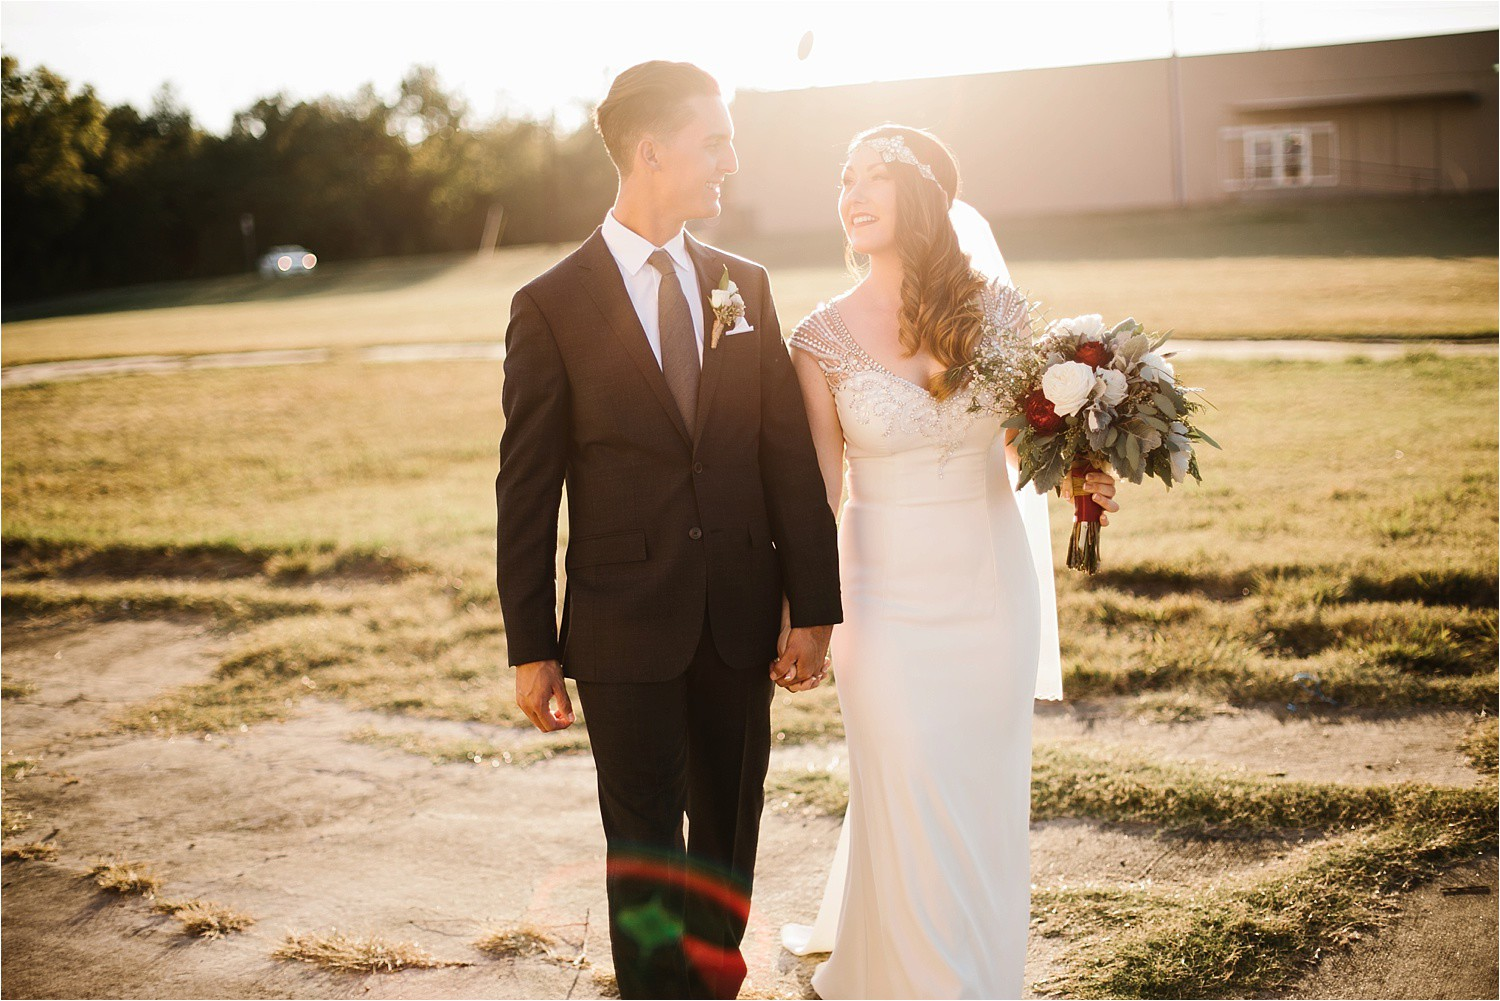 whittney-drew-__-an-intimate-wine-and-navy-wedding-in-an-industrial-venue-at-loft-123-in-paris-tx-by-north-texas-wedding-photographer-rachel-meagan-photography-_-068